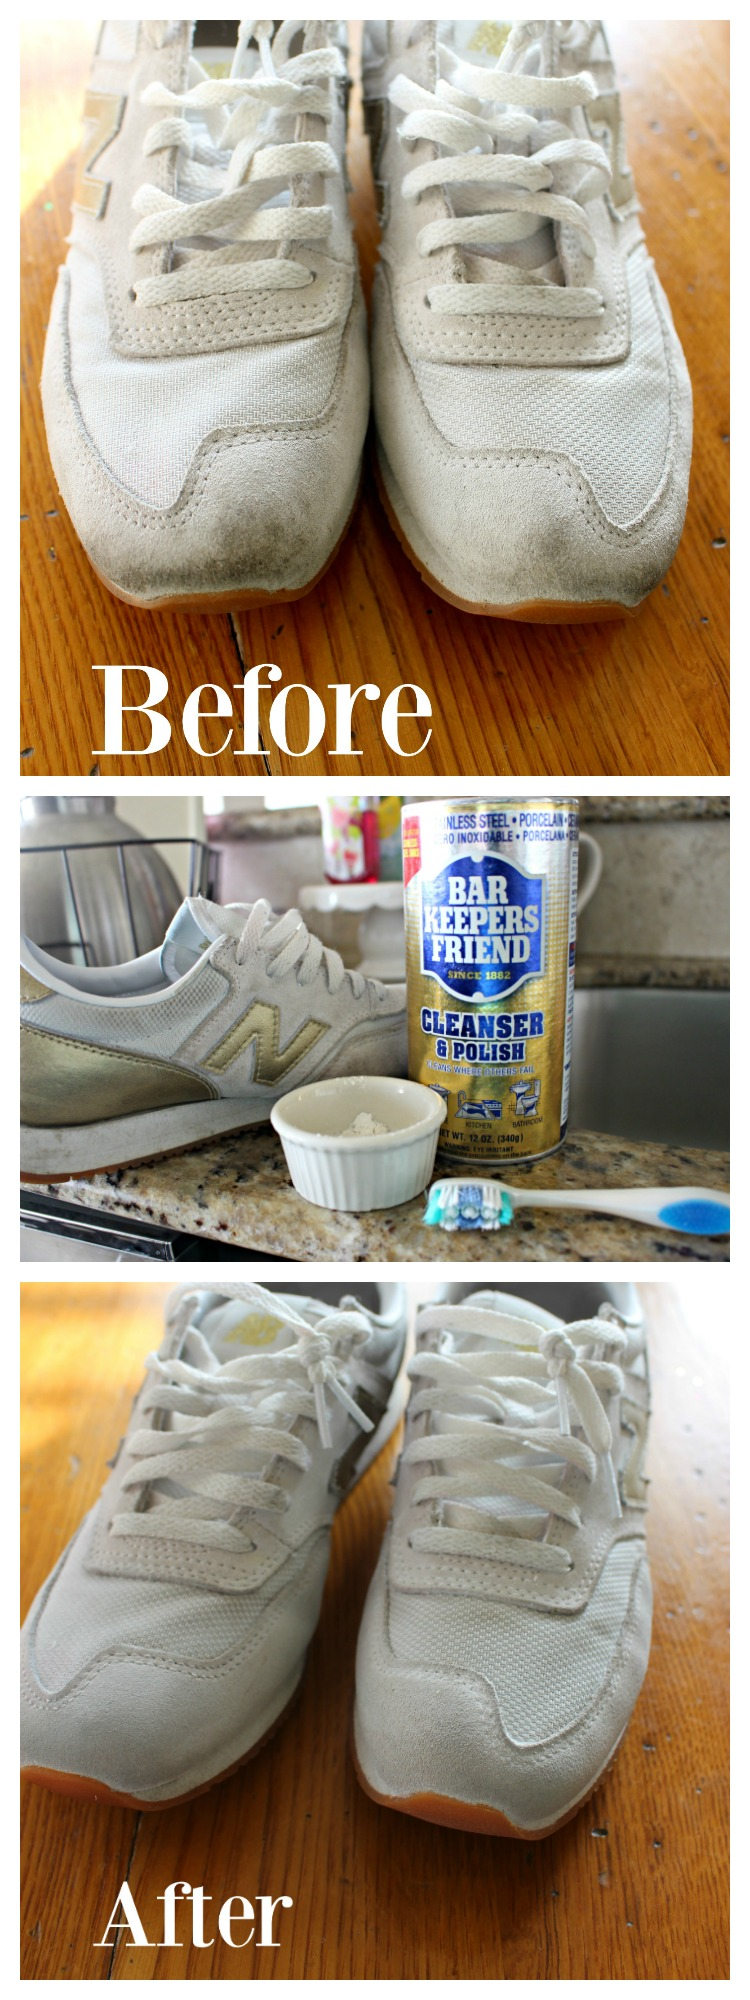 How to Keep Your White Tennis Shoes Bright & White!